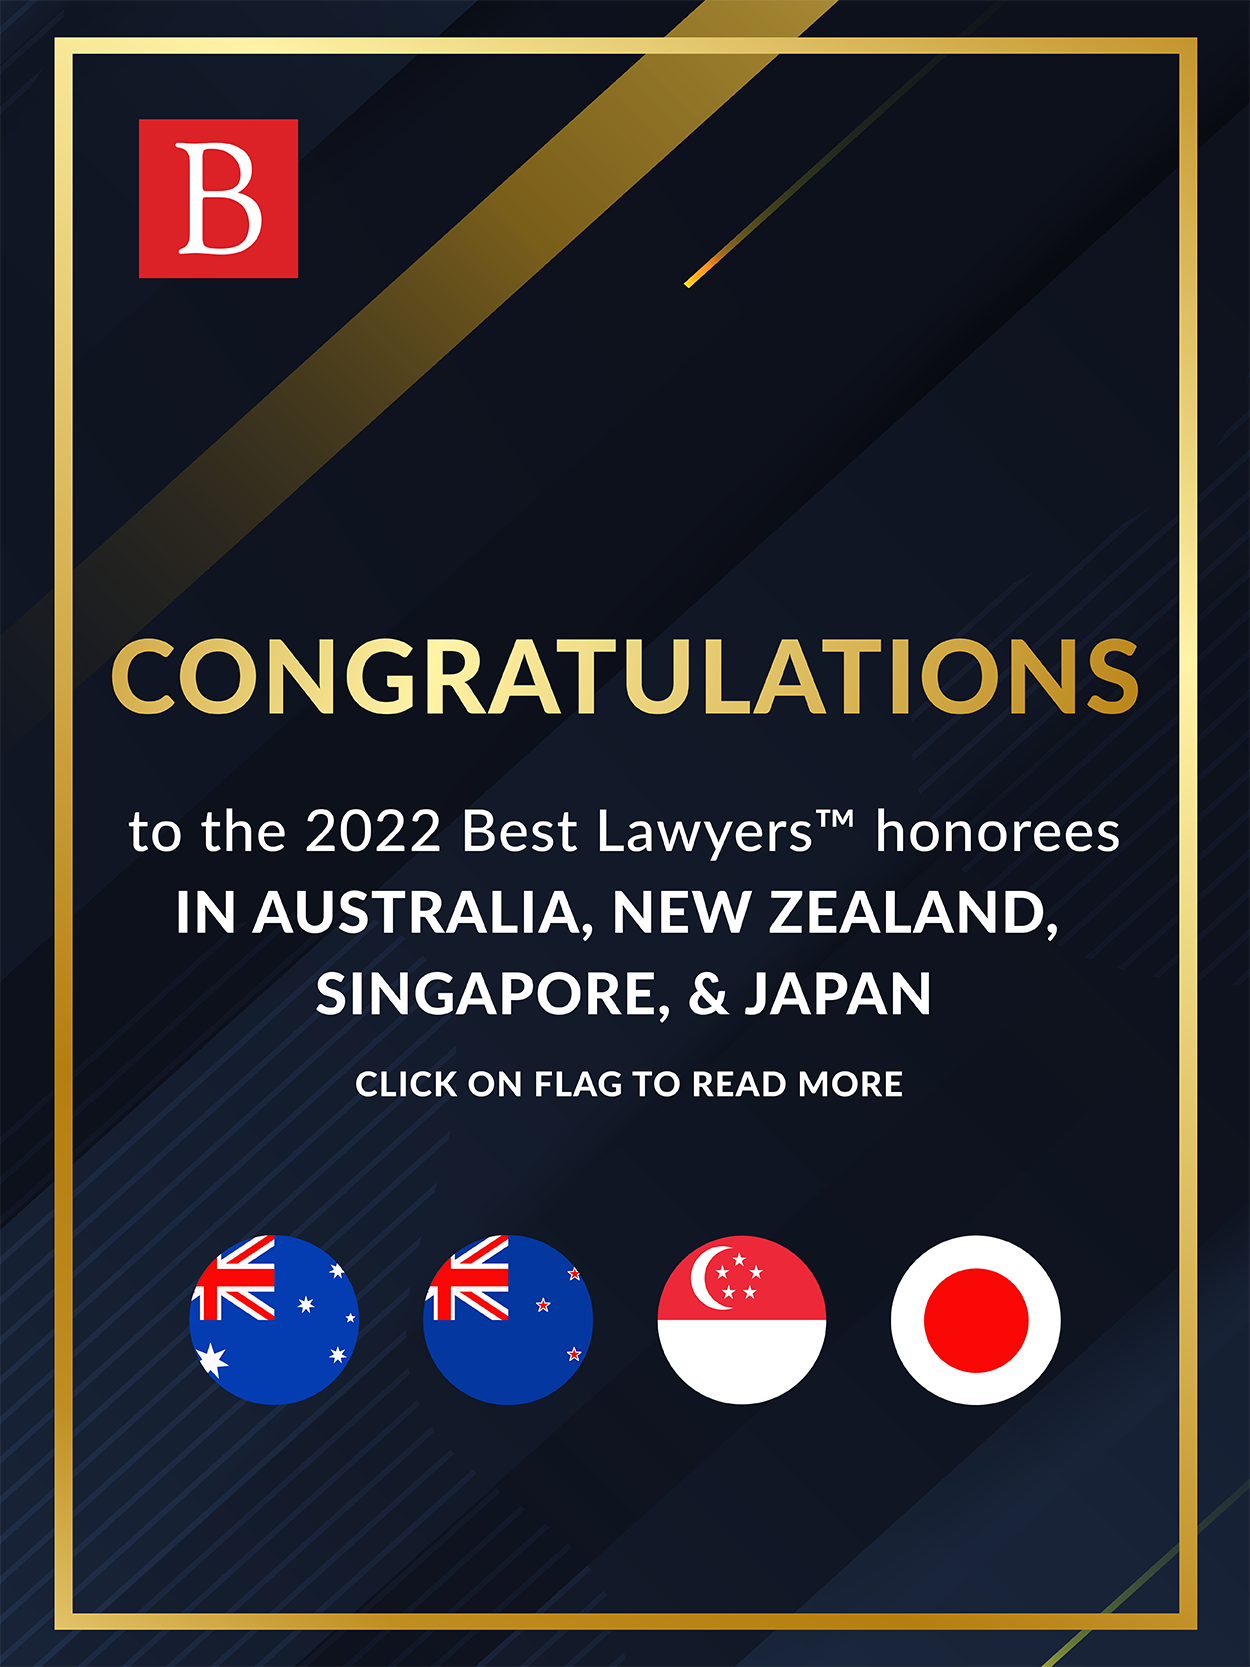 Congratulations to our 2022 Best Lawyers International Honorees